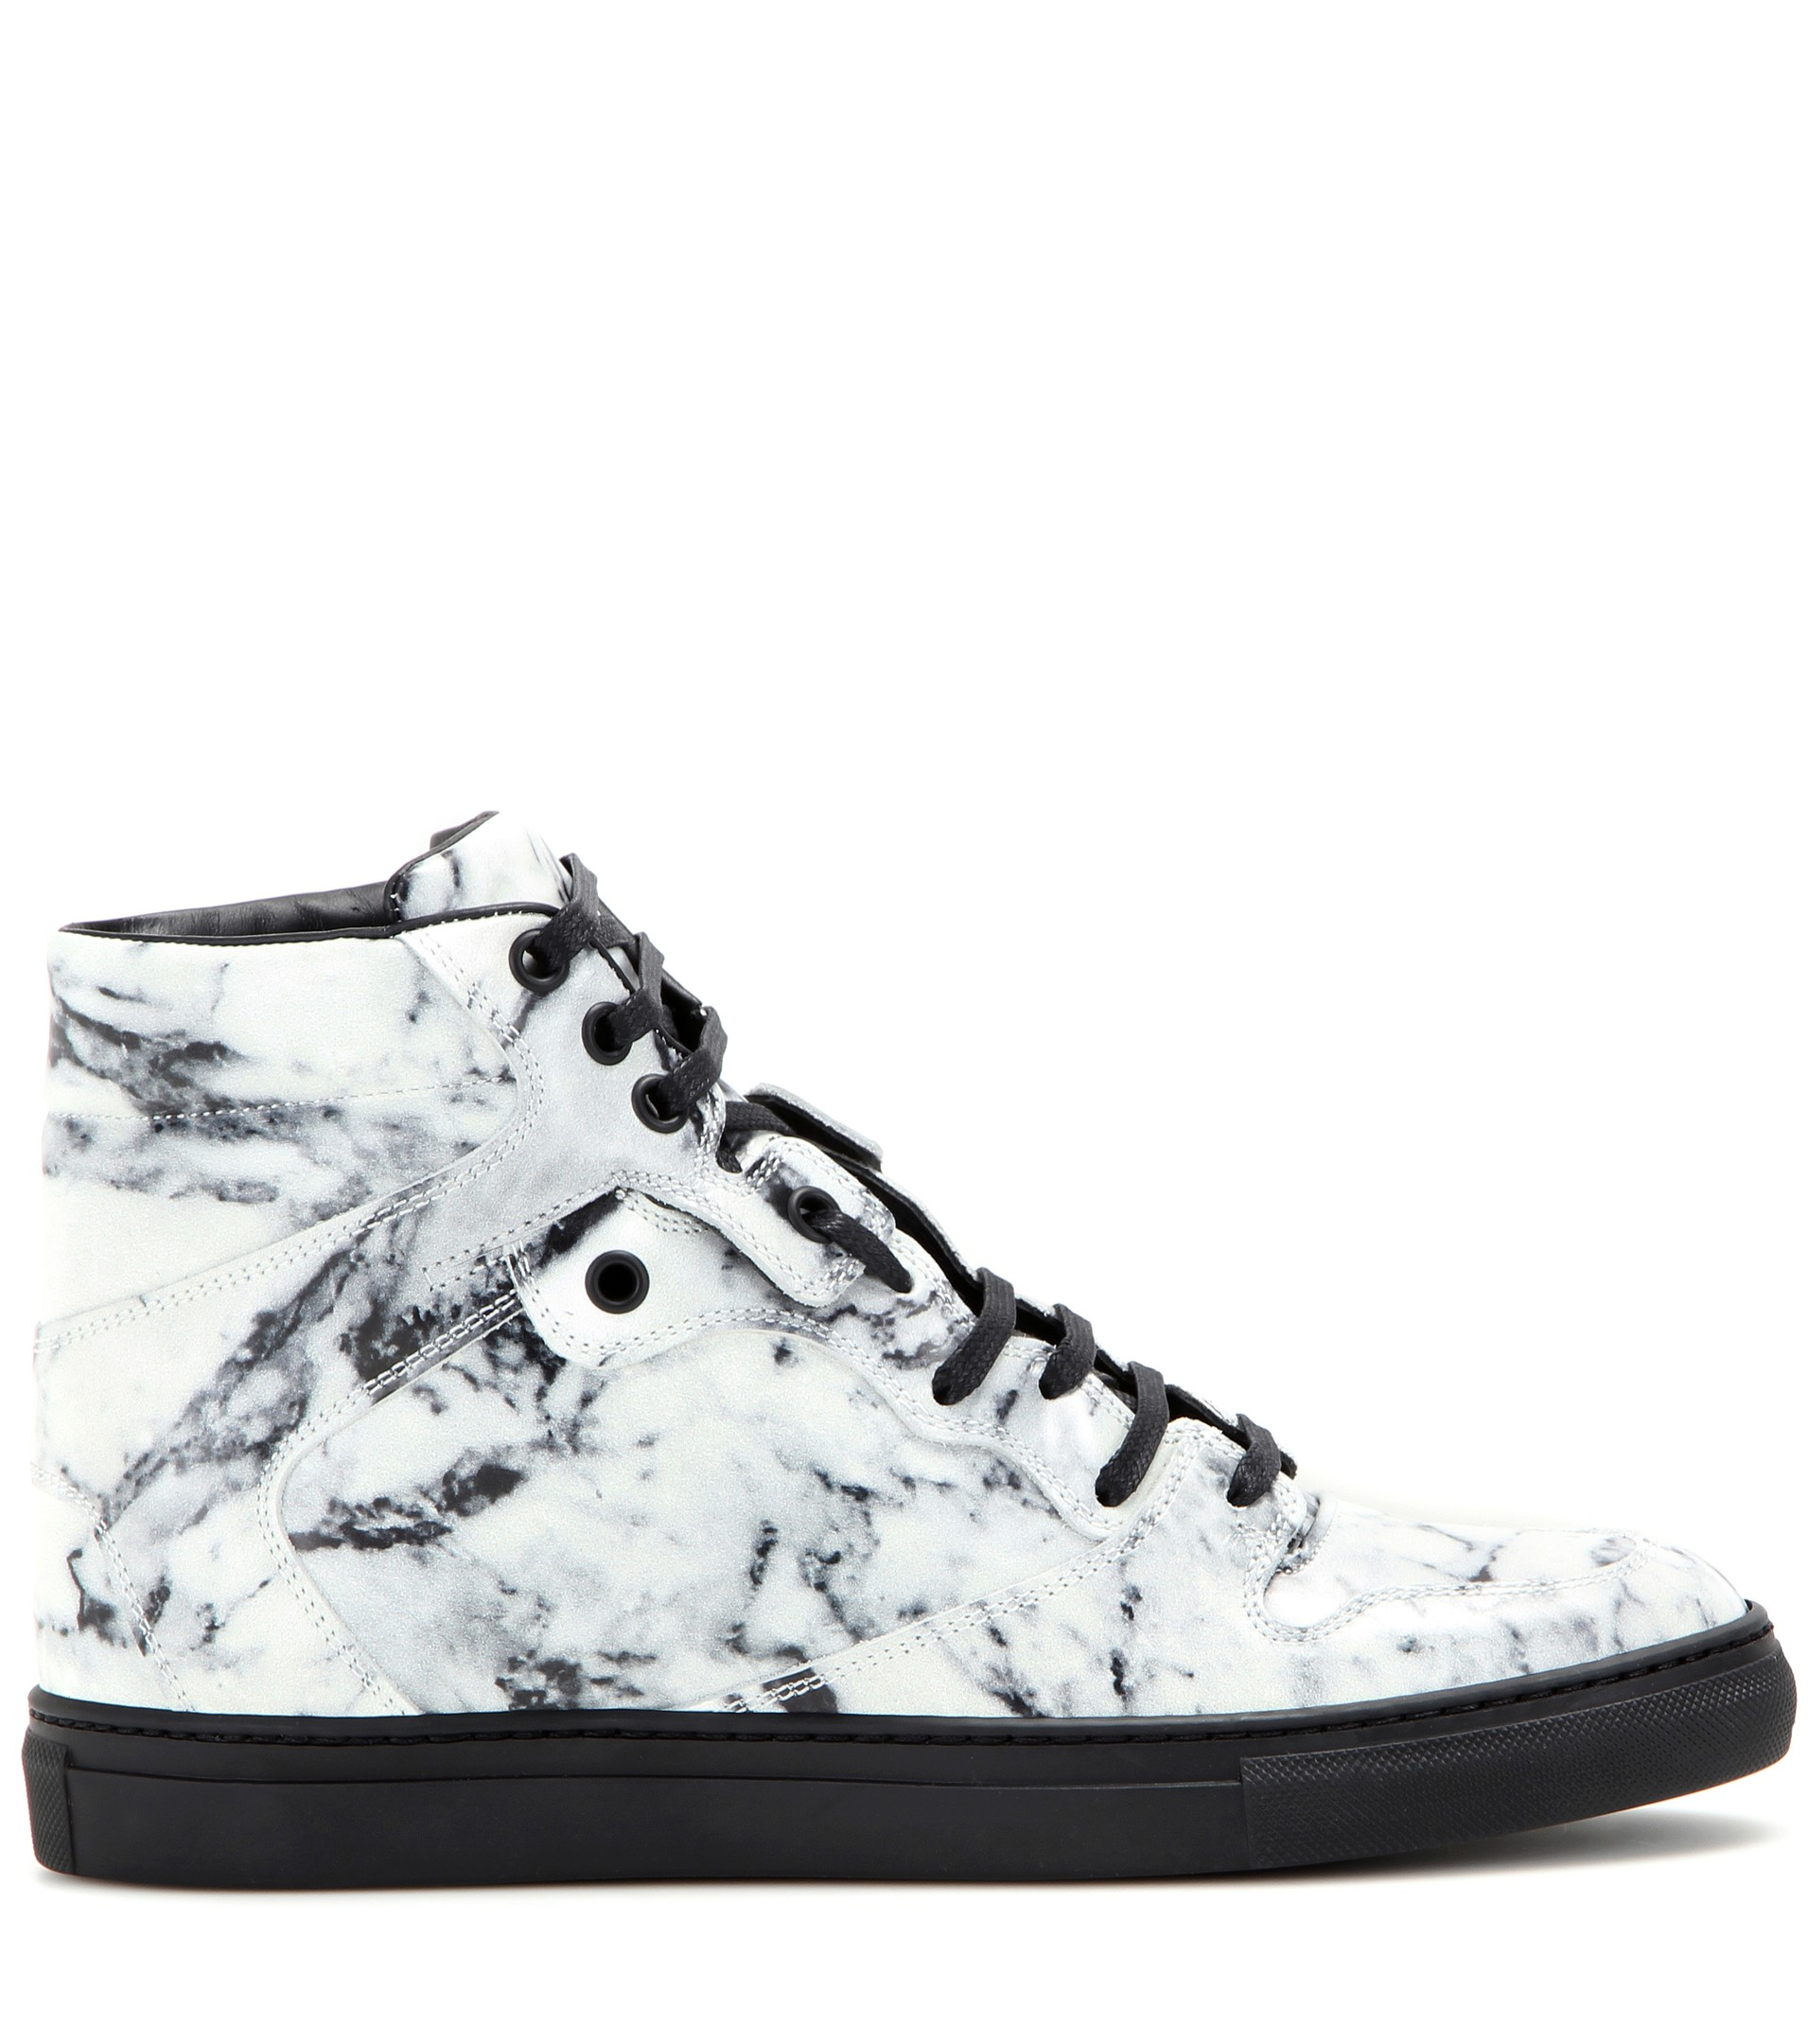 Balenciaga Leather-Trimmed High Top Sneakers cheap sale get to buy sale 100% authentic IRGvgscFF